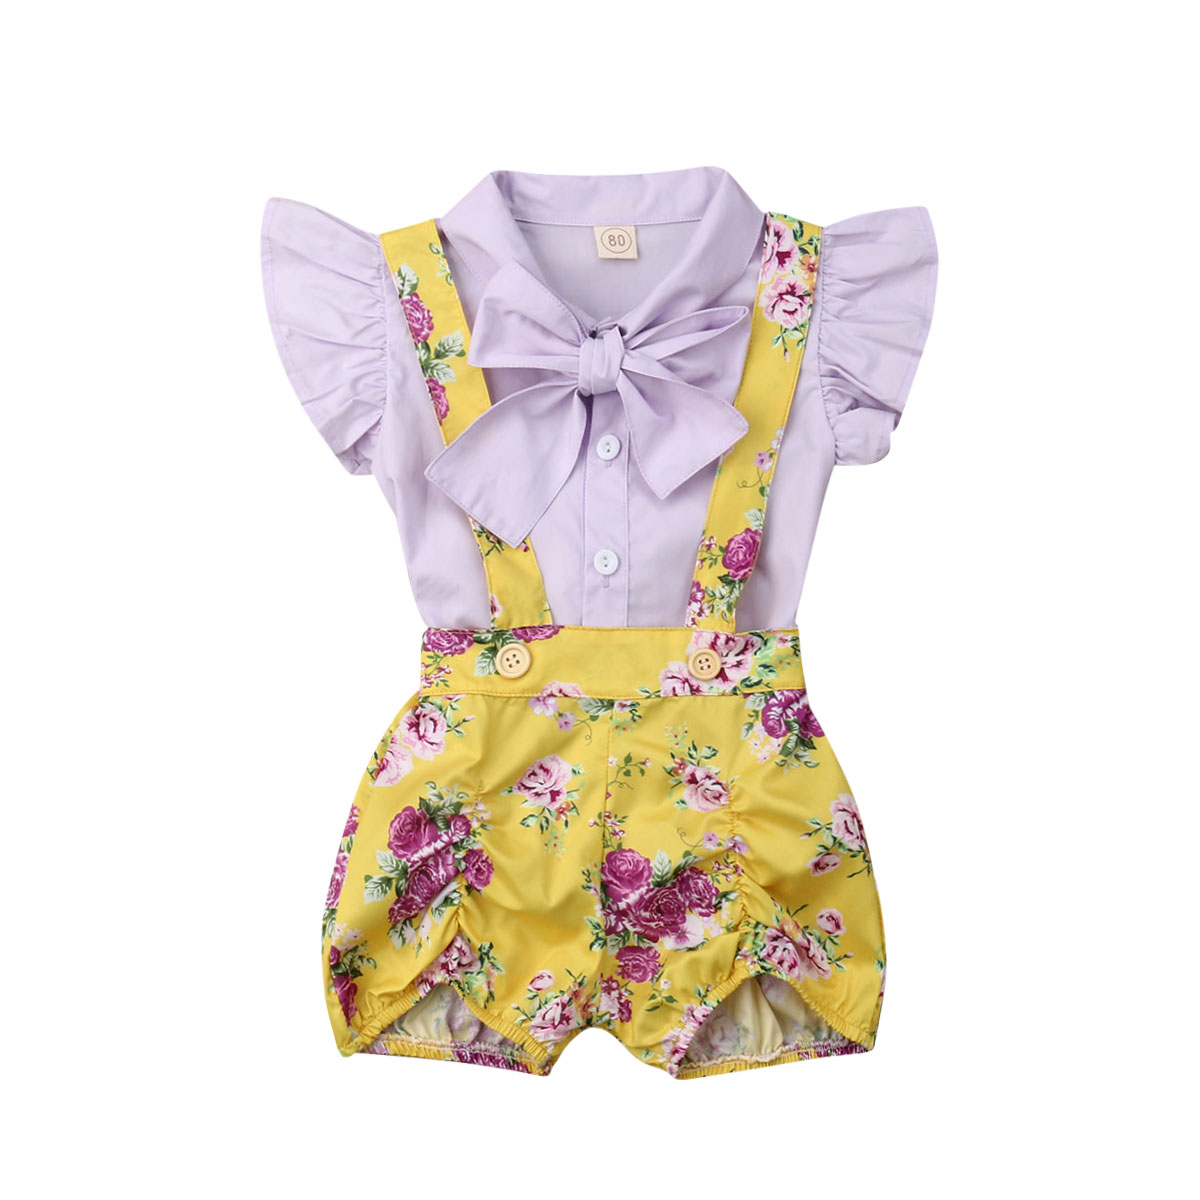 Clothing Sets Girls' Clothing Toddler Infant Baby Girl 2019 New Brand Summer Fly Sleeve Bowknot Top Floral Short Overall Set Clothes 6m-4t